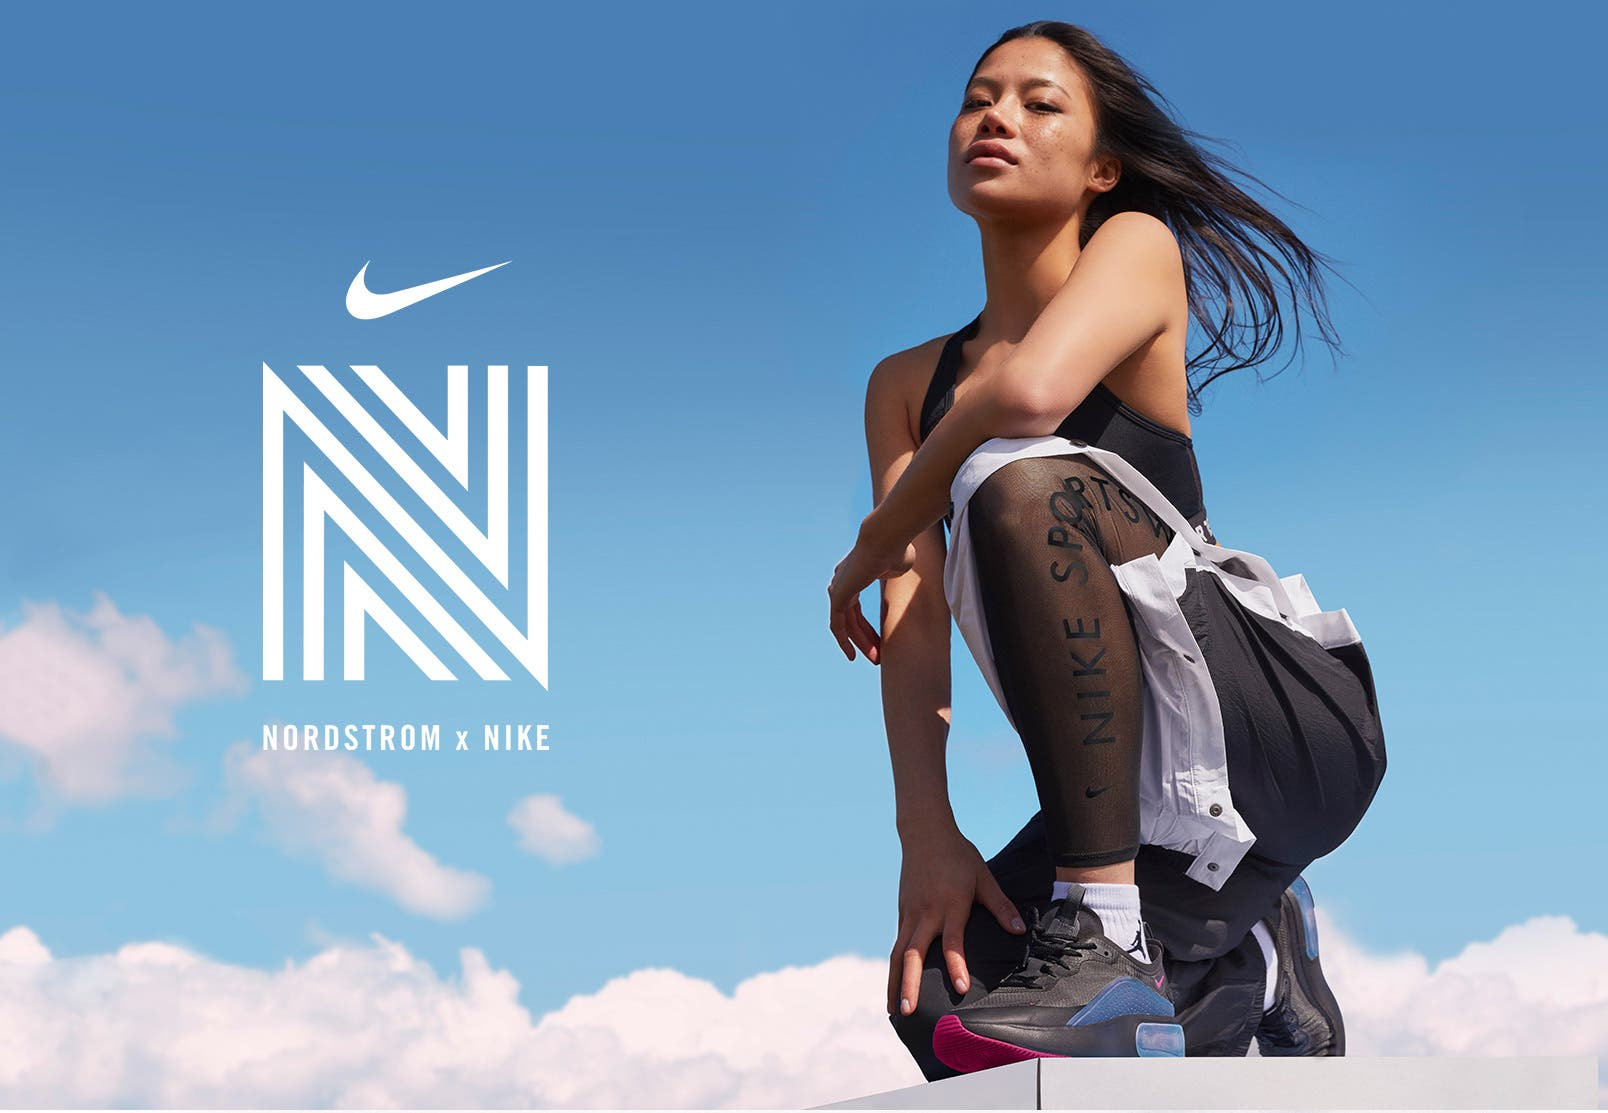 Nordstrom x Nike Celebrates Air Max Day: March 21-April 14.